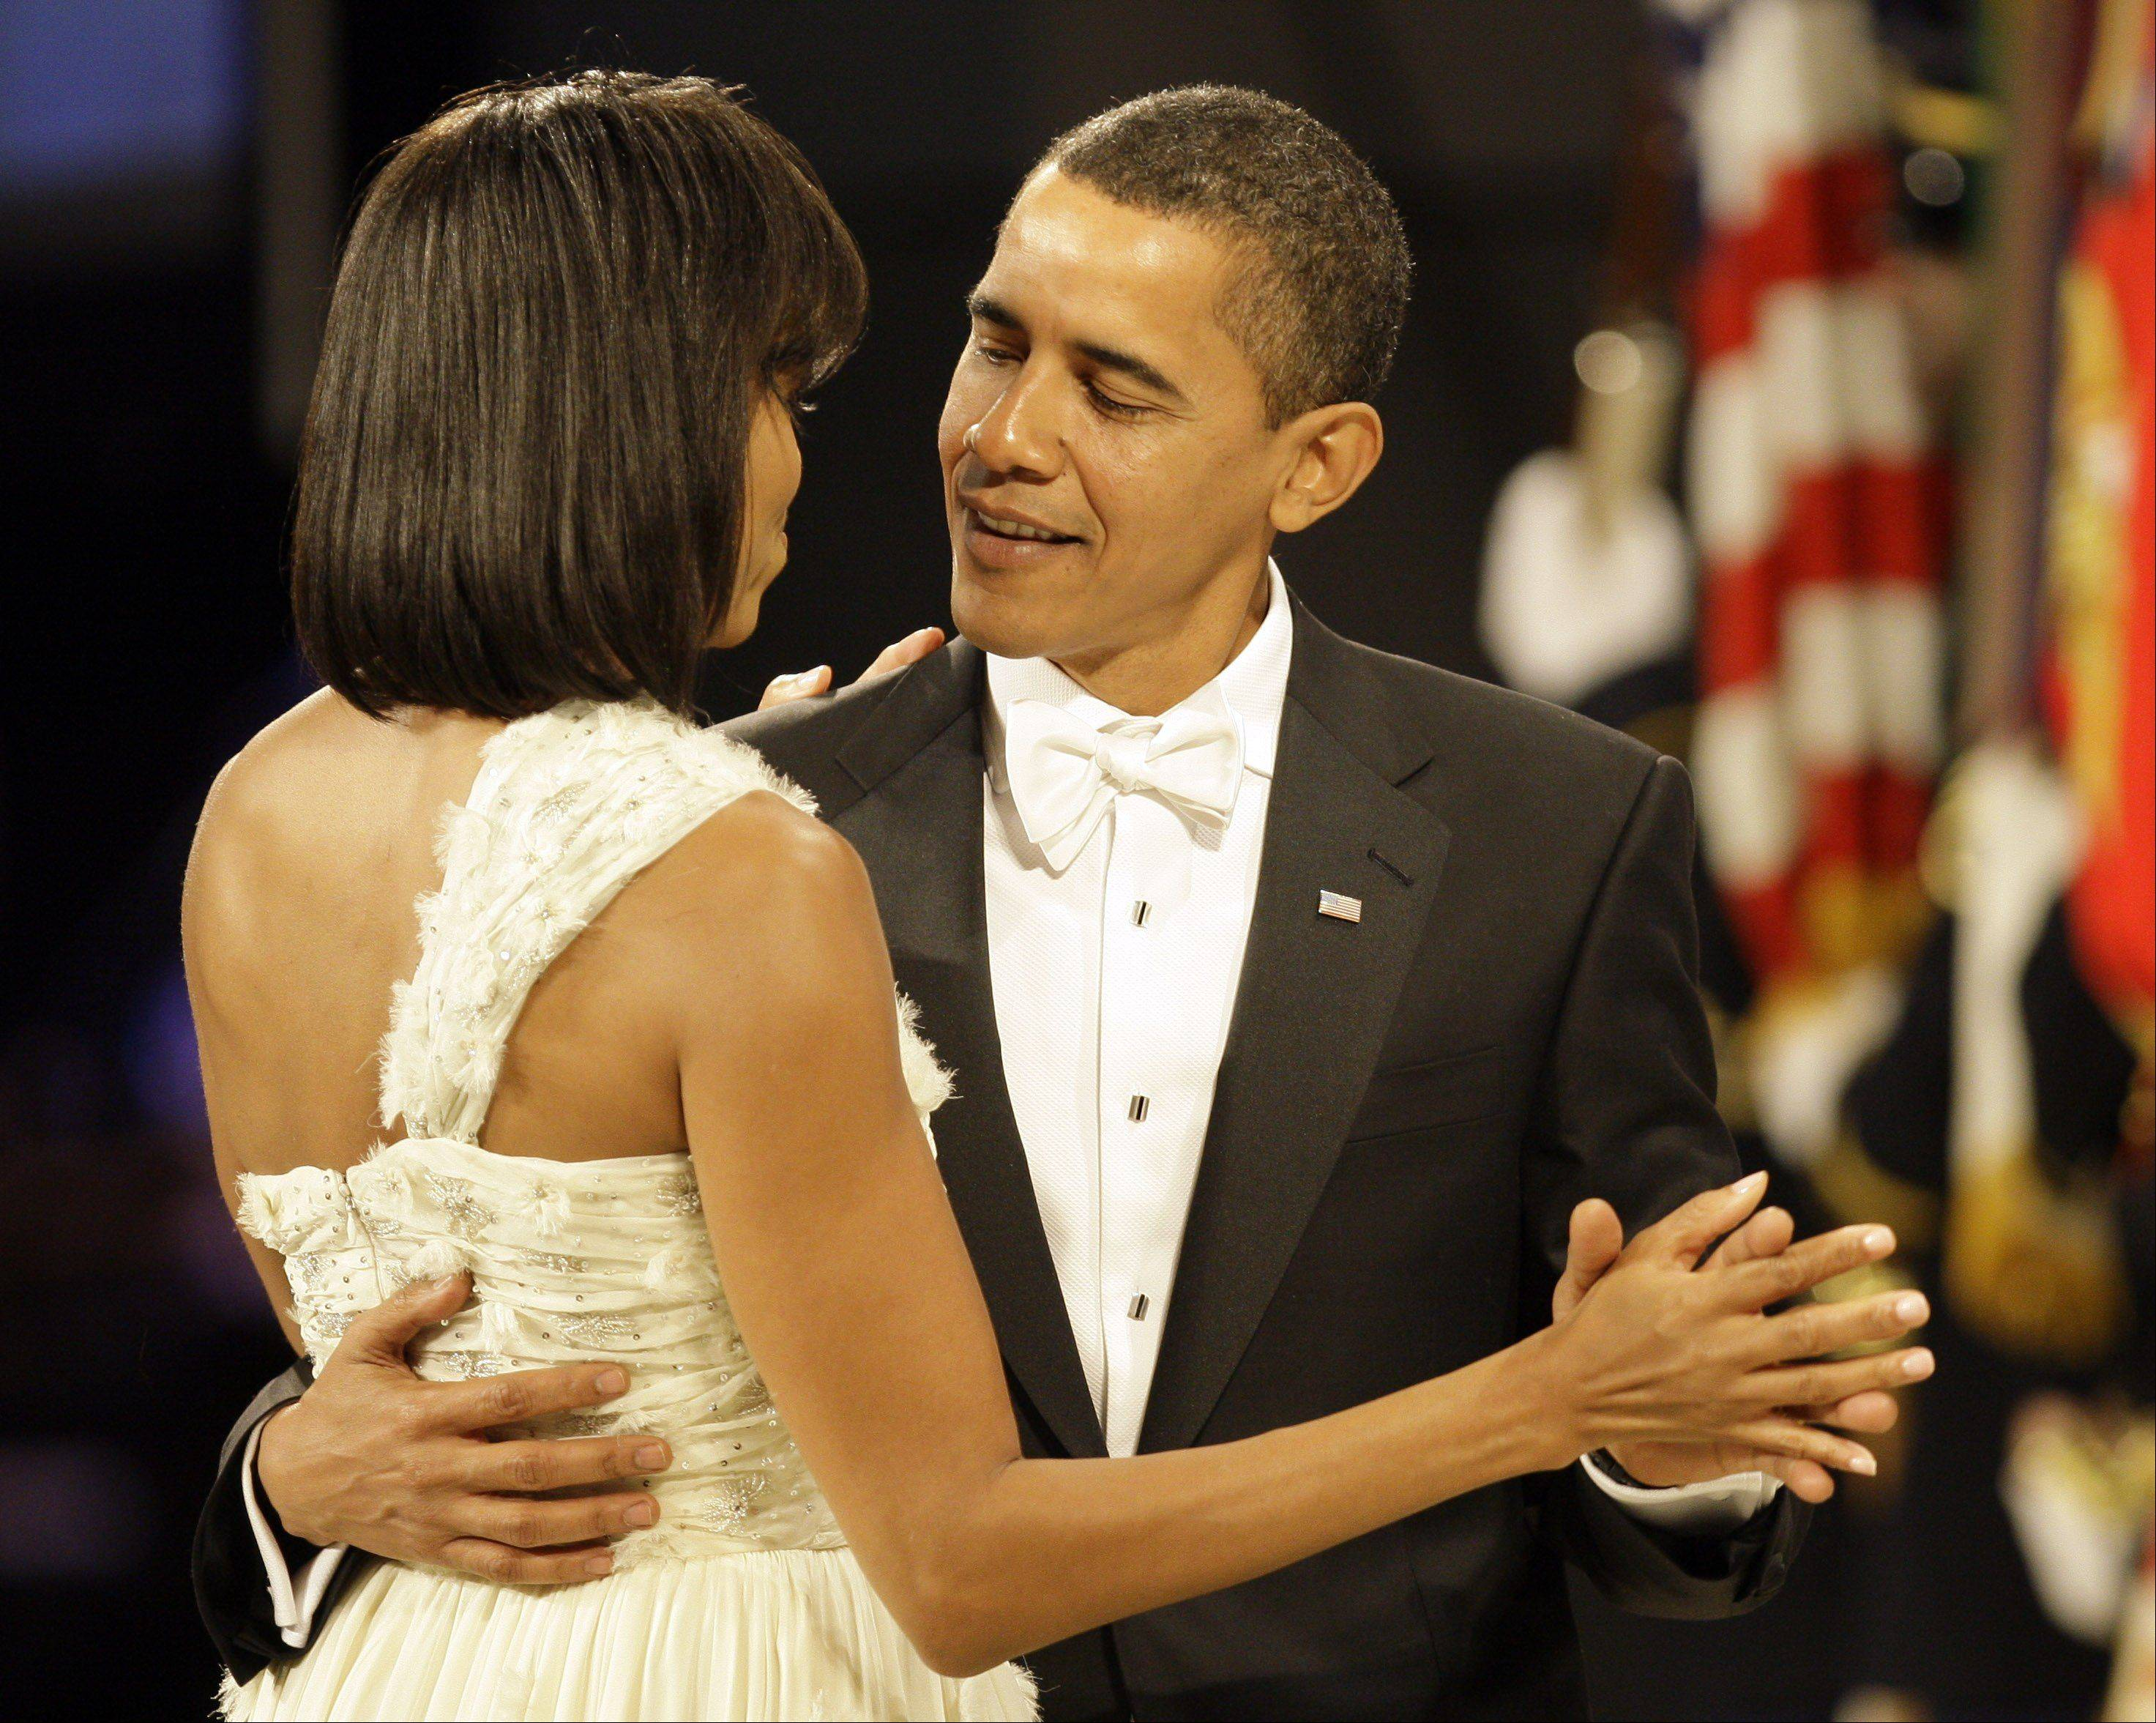 A bow tie has the power to make a statement. Wearing this white bow tie with a black tuxedo without tails drew comments (good and bad) for President Barack Obama as he danced with first lady Michelle Obama during an inaugural ball in 2009.